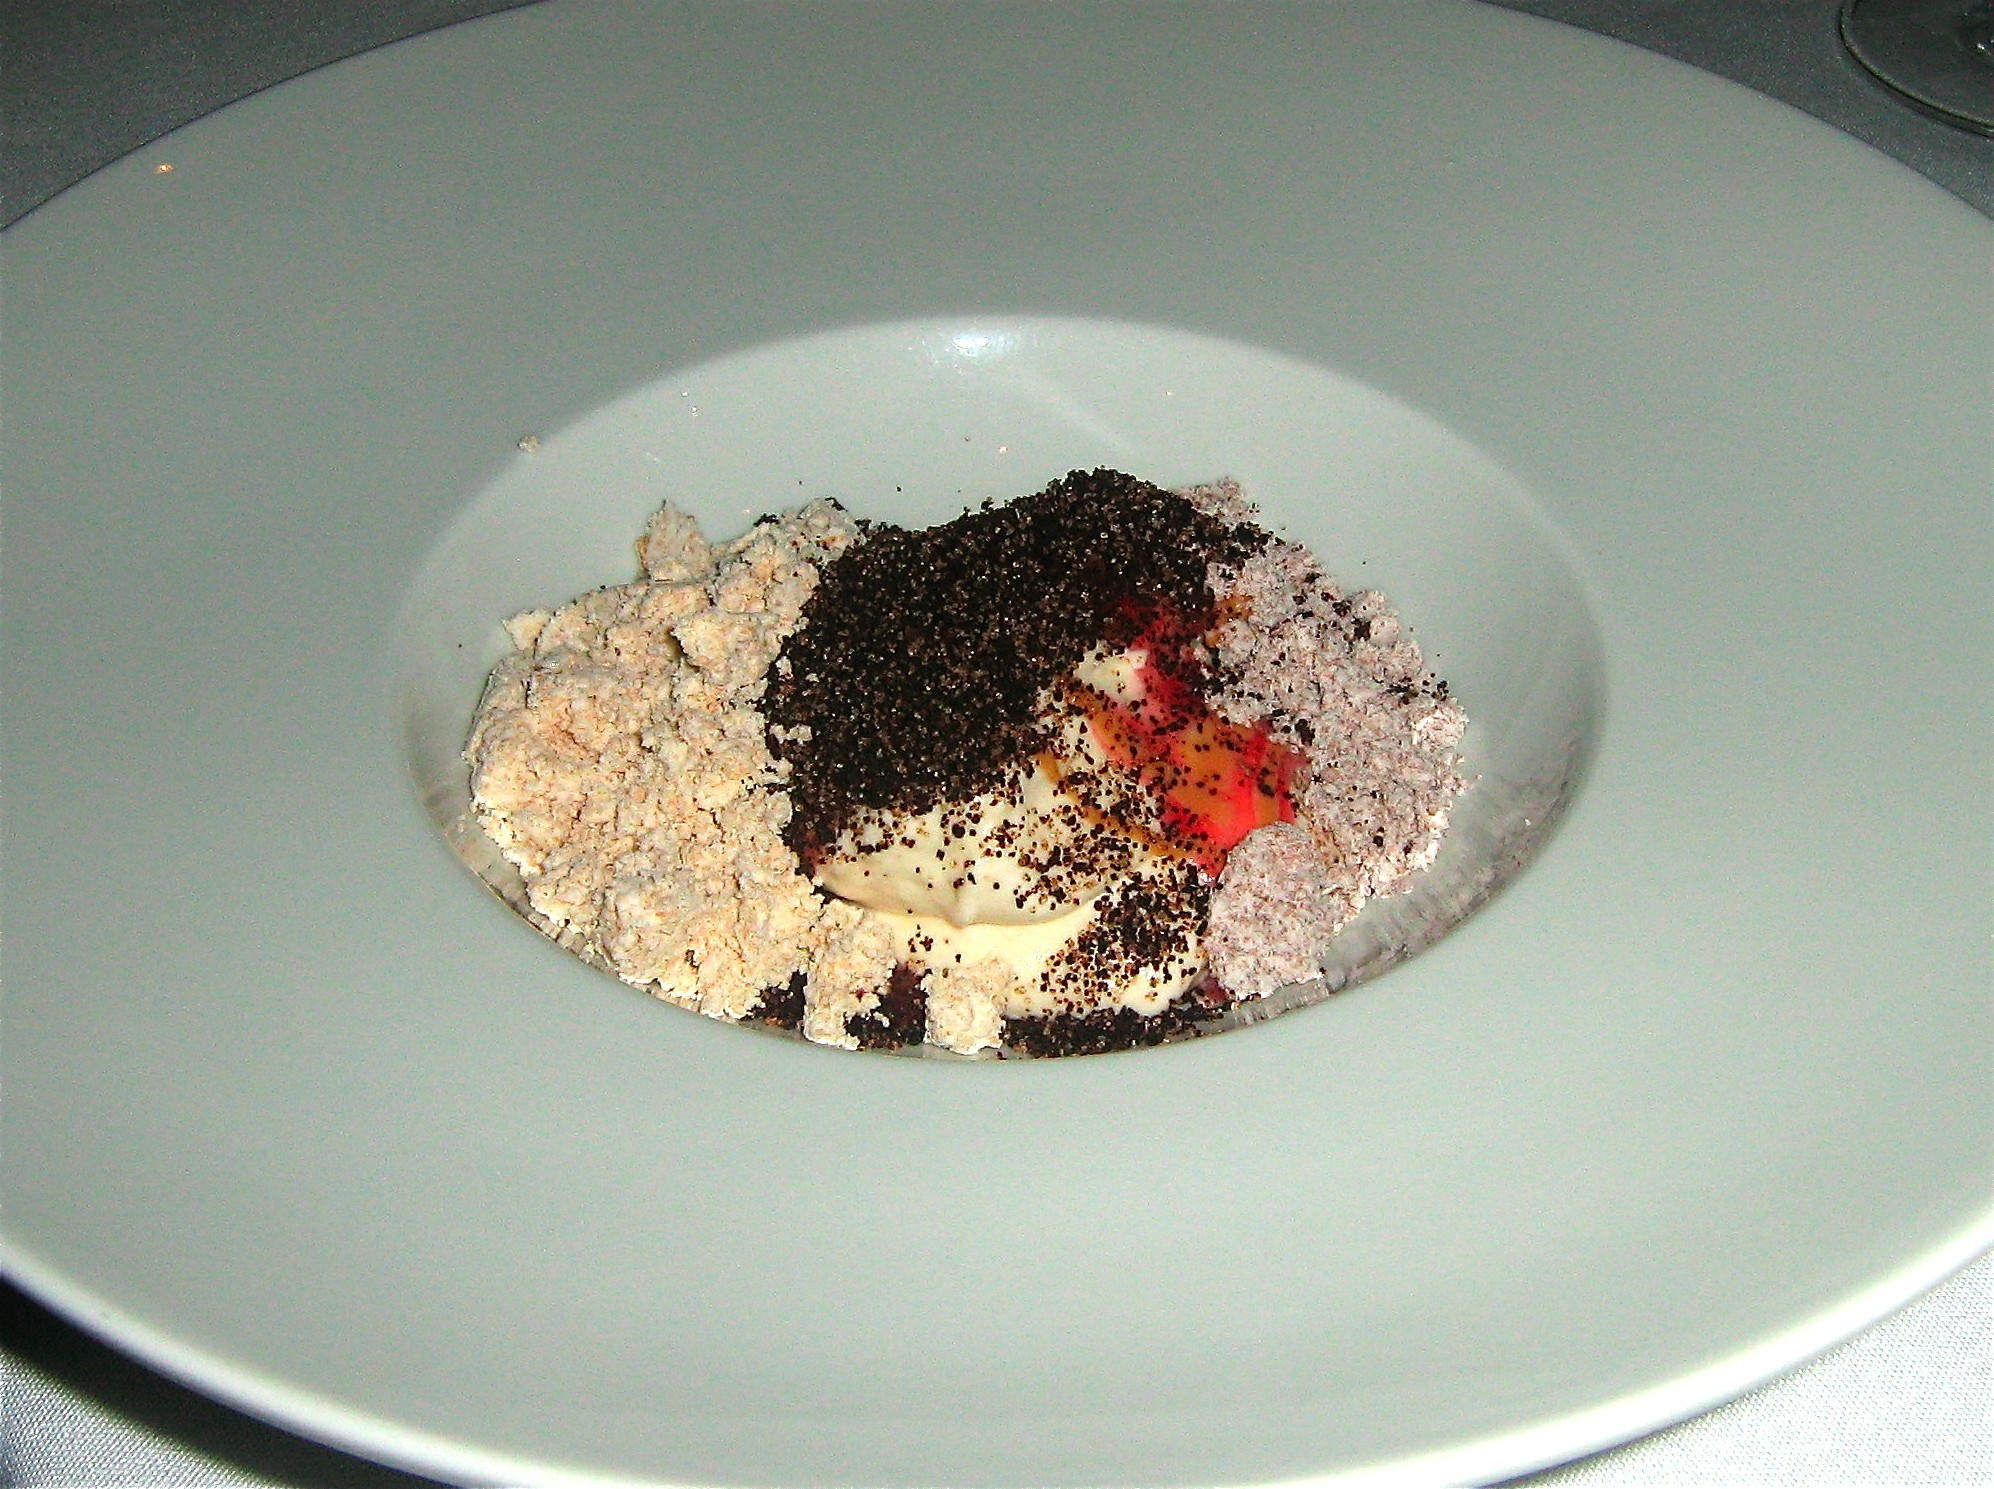 raza-coffee-caramelized-banana-mousse-dehydrated-peanut-butter-strawberry